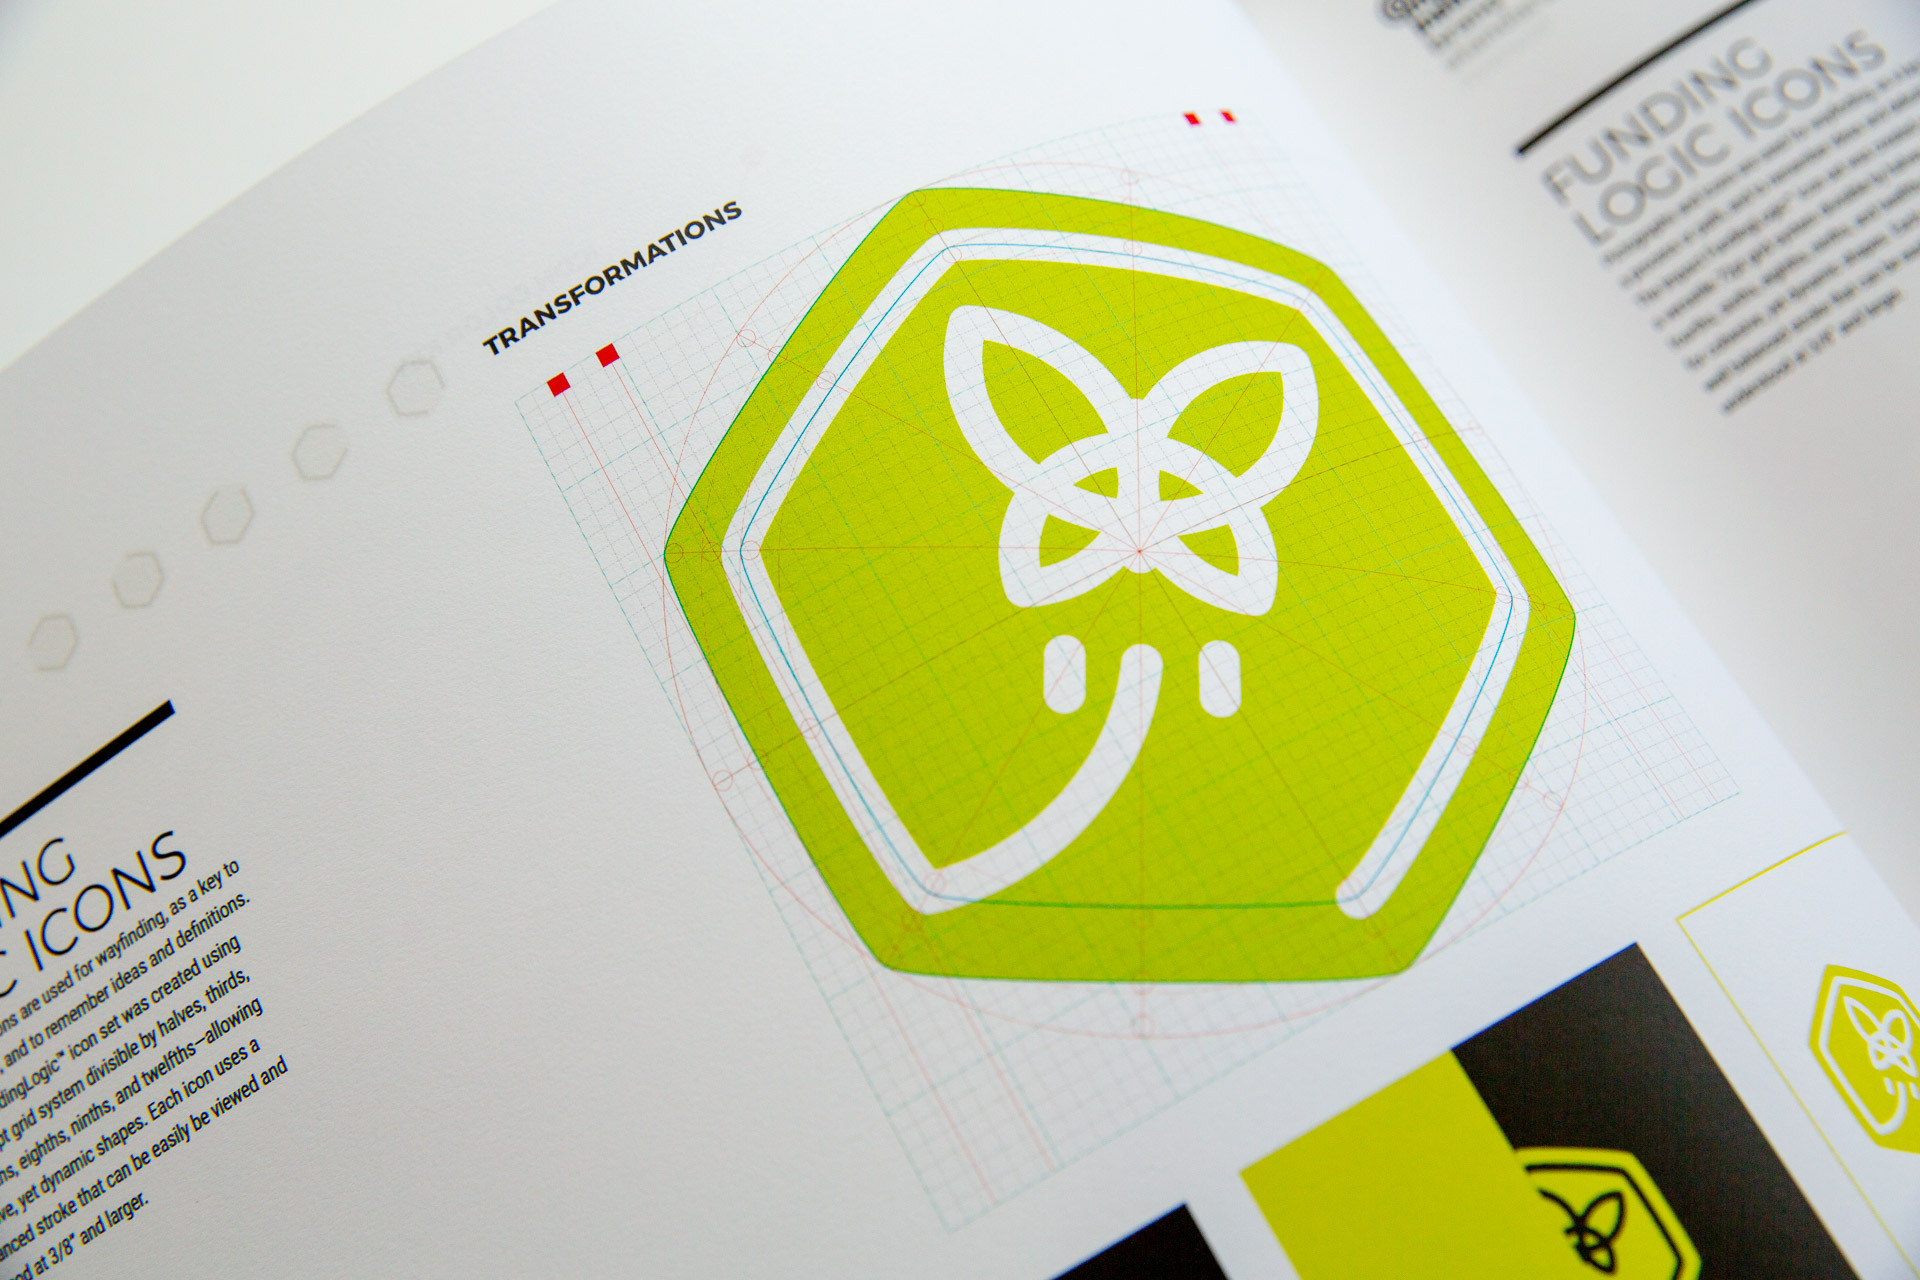 Green butterfly Transformations icon on white page of Impact brand guideline manual